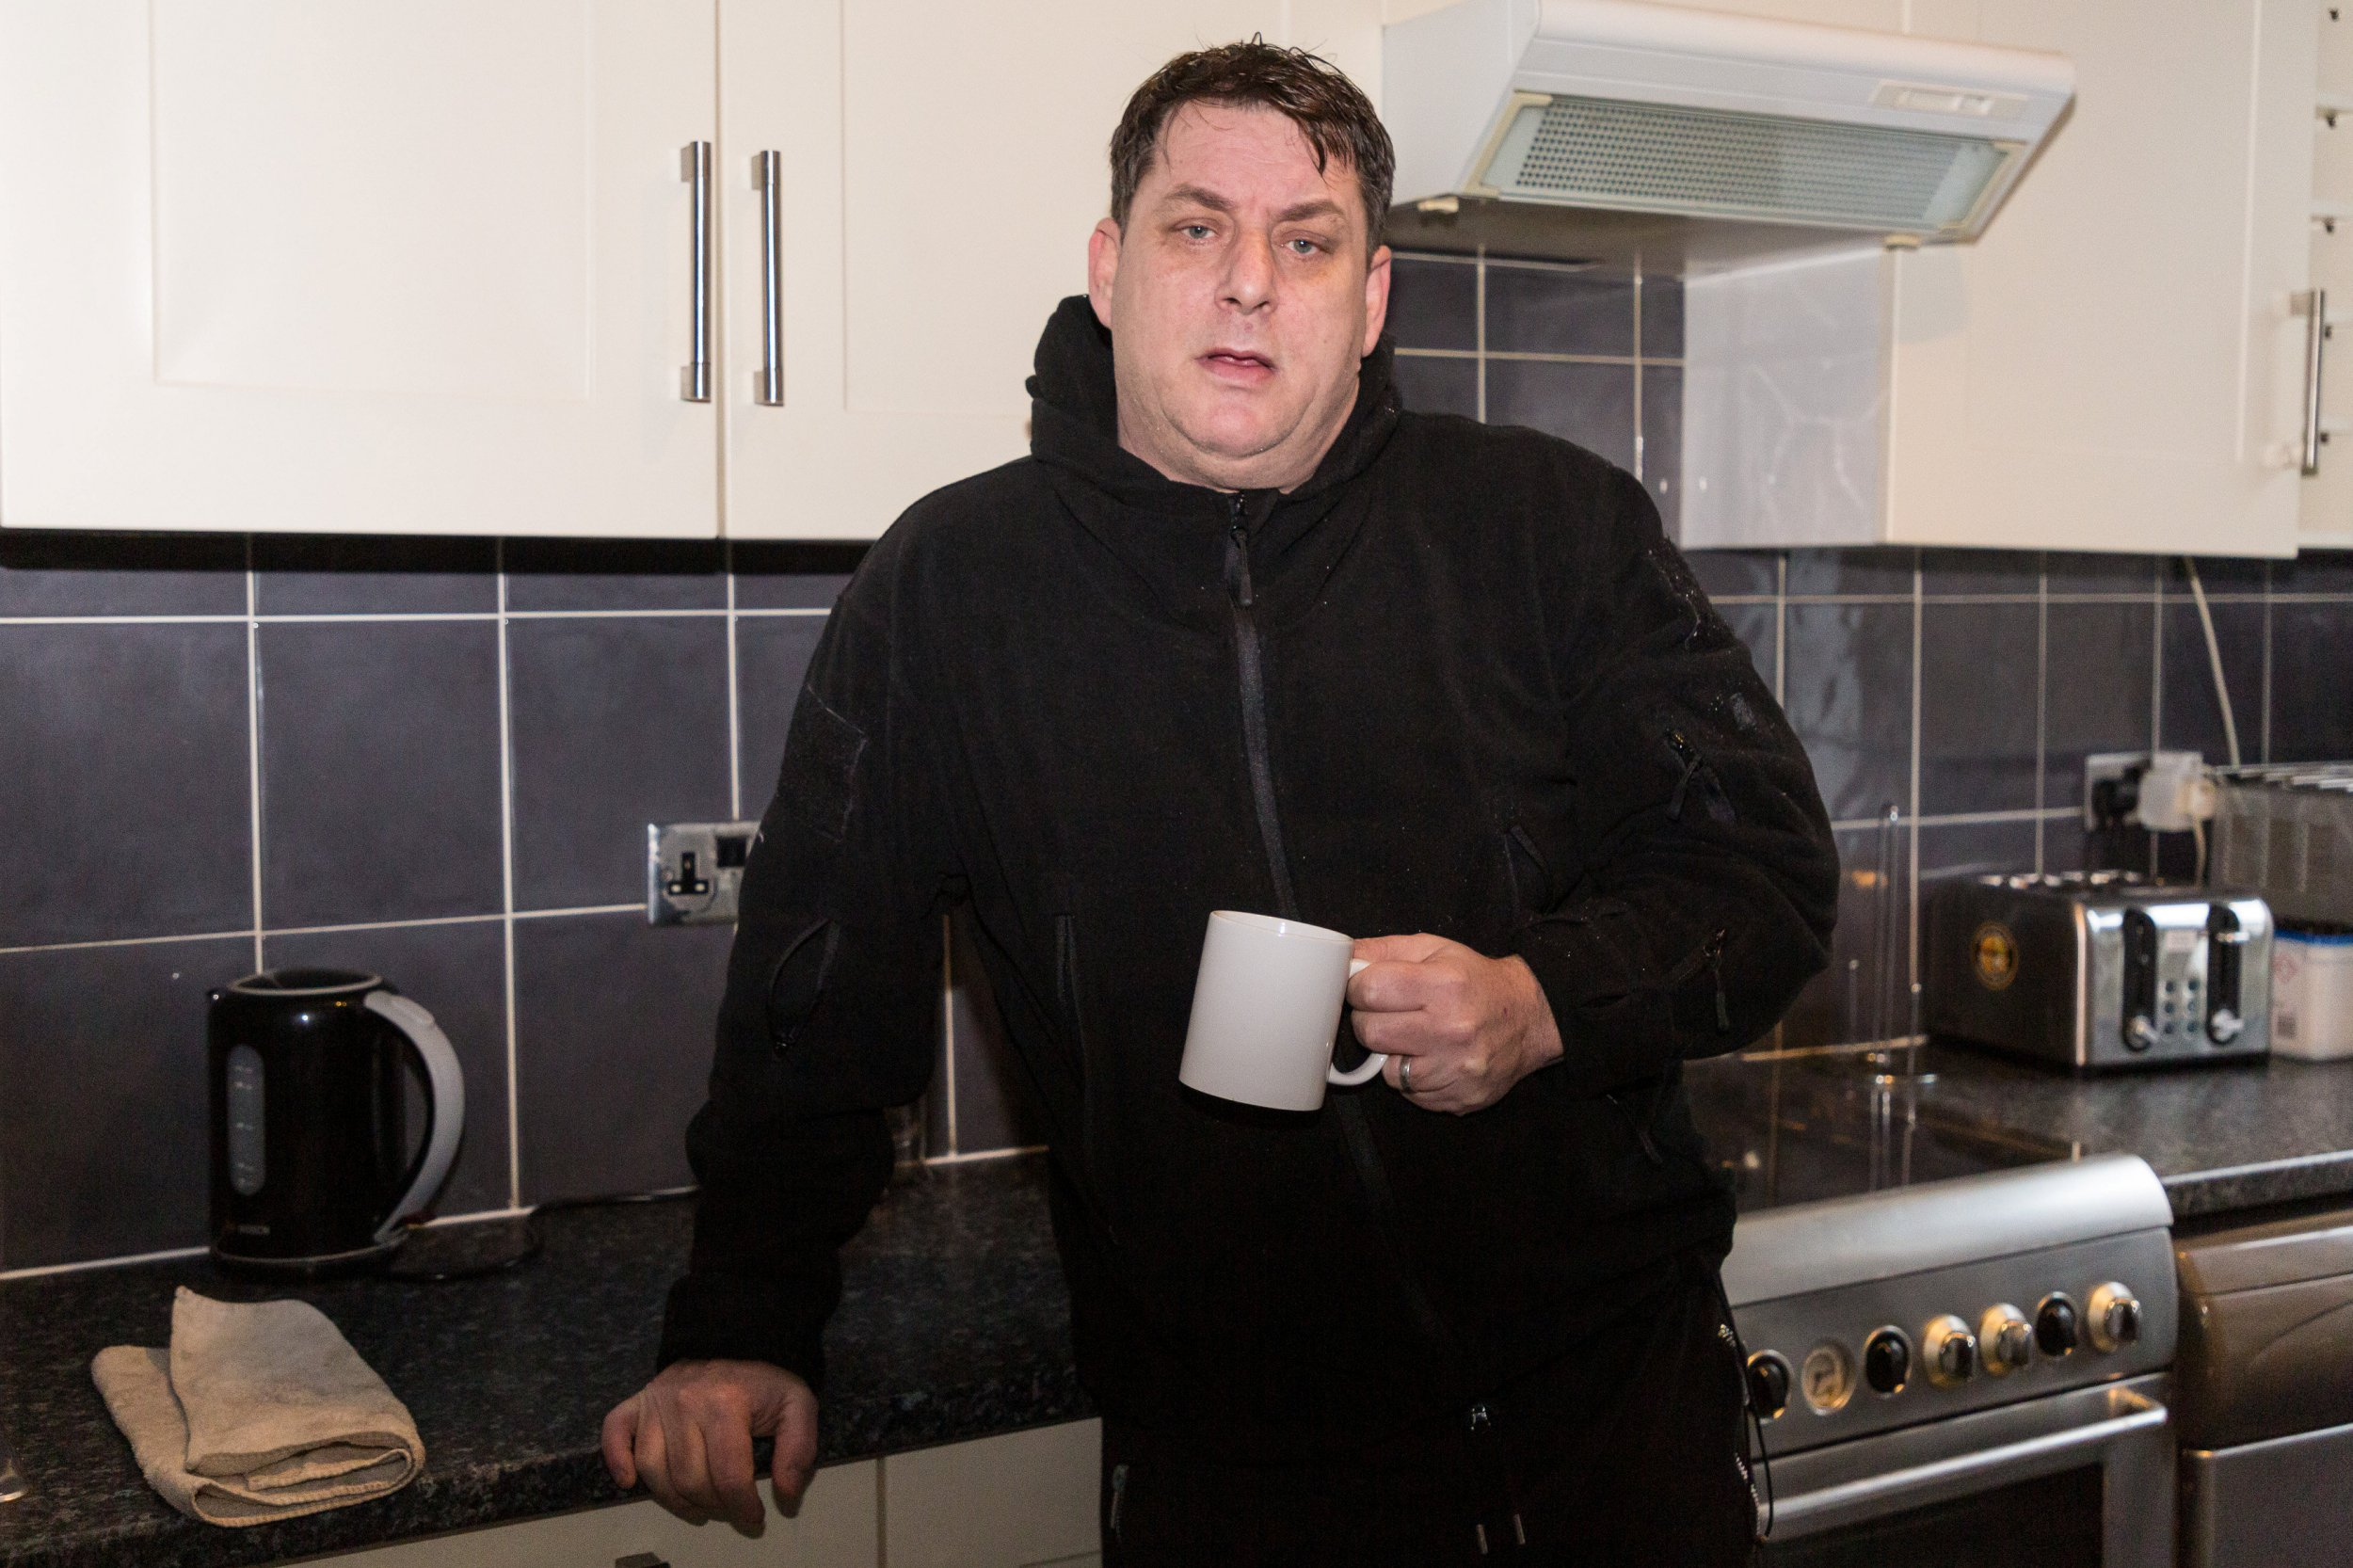 Antony Zomparelli in his Georgian flat he bought through Right-To-Buy in 2014. See SWNS story SWSYflat; A homeowner has been told to pay ??360,000 or face losing his home after the council mistakenly sold him a ??700,000 flat -- at half price. Antony Zomparelli, 54, bought his two-bed flat from Islington Borough Council for ??340,000 in 2014. But two years later the council wrote to the security guard, admitting they had accidentally undercharged him because they thought the home only had one bedroom. Dad-of-four Antony was unable to fork out the difference - so the council is taking him to court to reclaim ownership of his flat or the money they claim he owes.